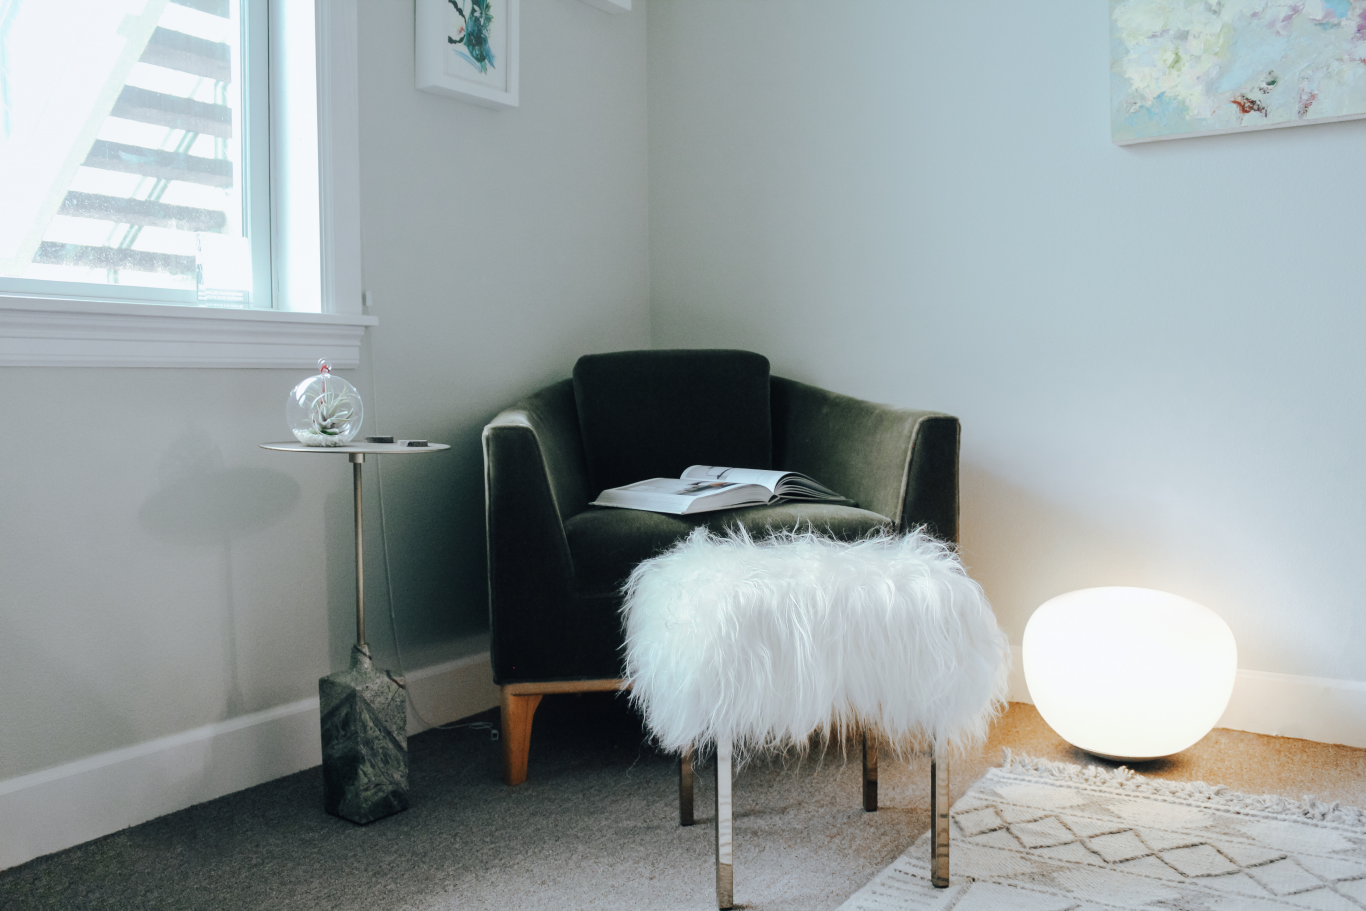 Adue Interiors Office Furniture Green Chair and Fuzzy Stool